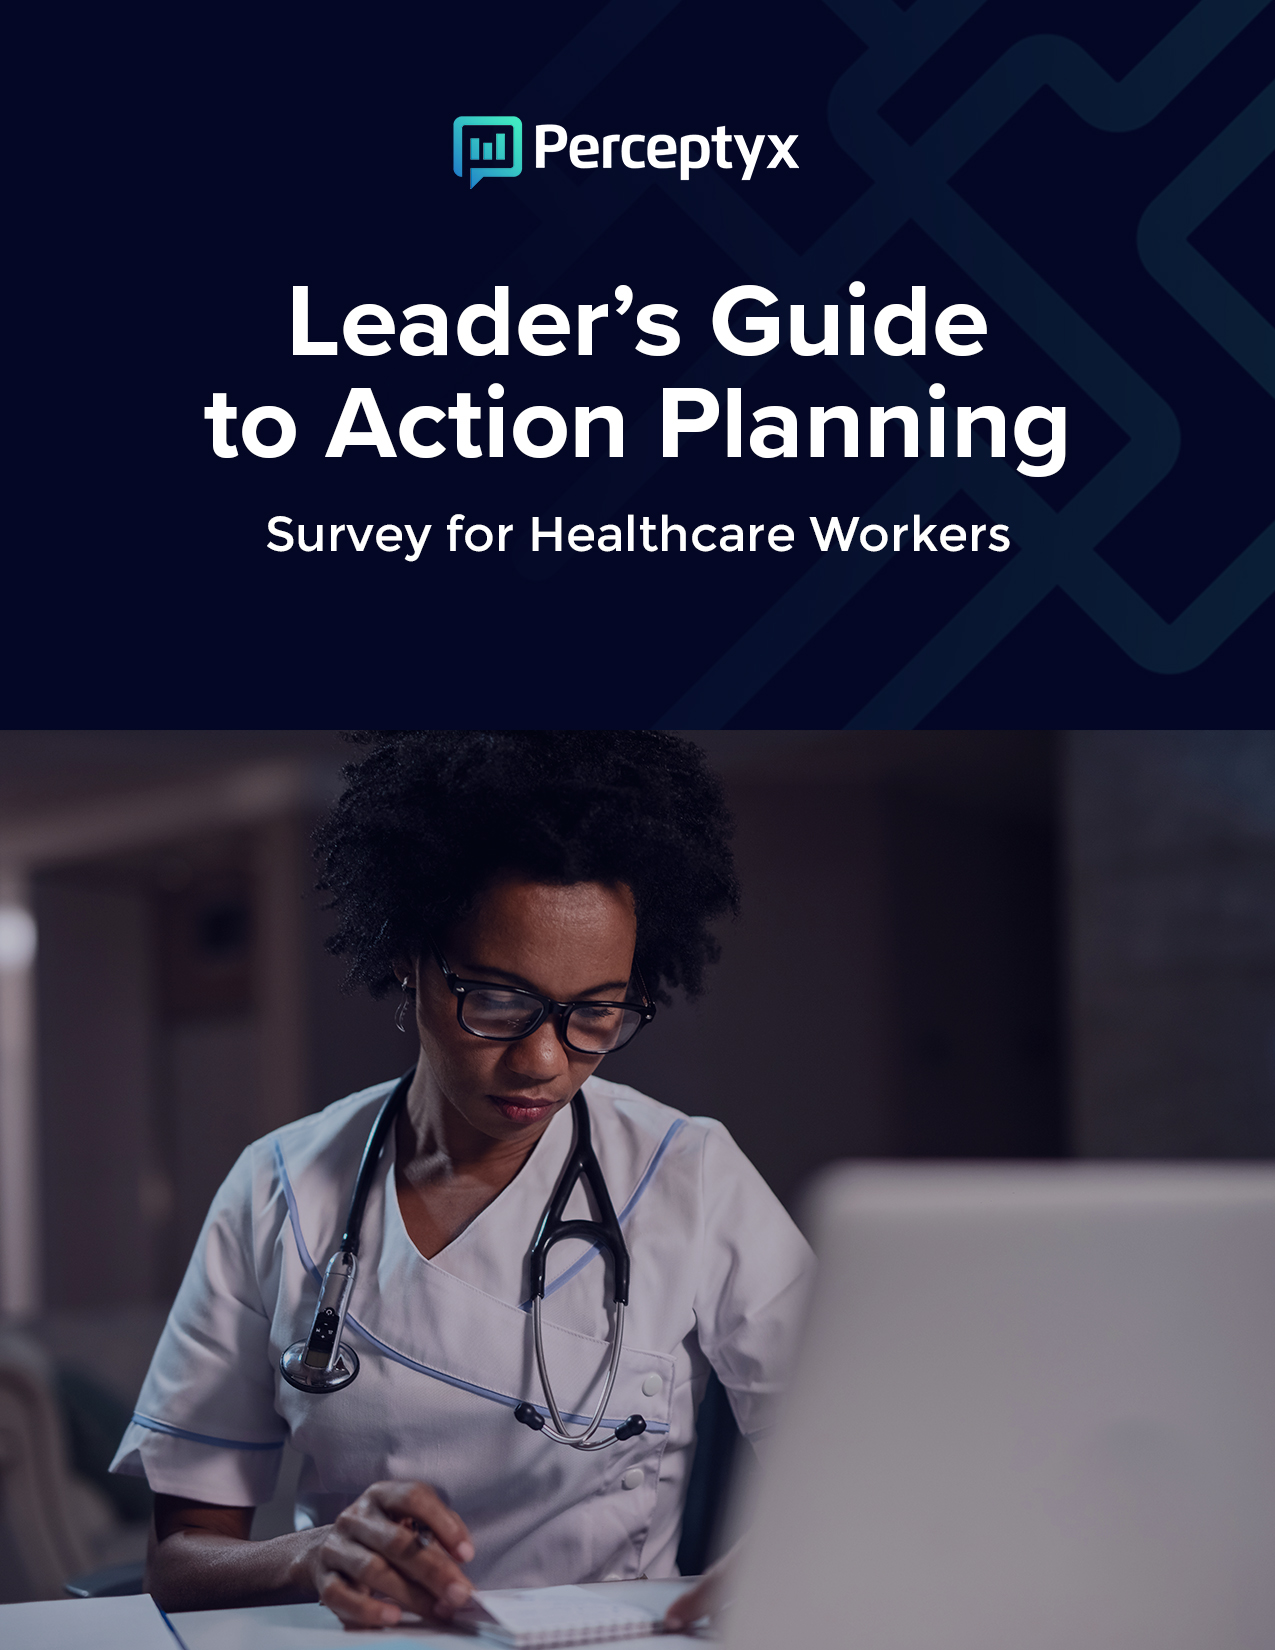 healthcareworker-guide-cover-2